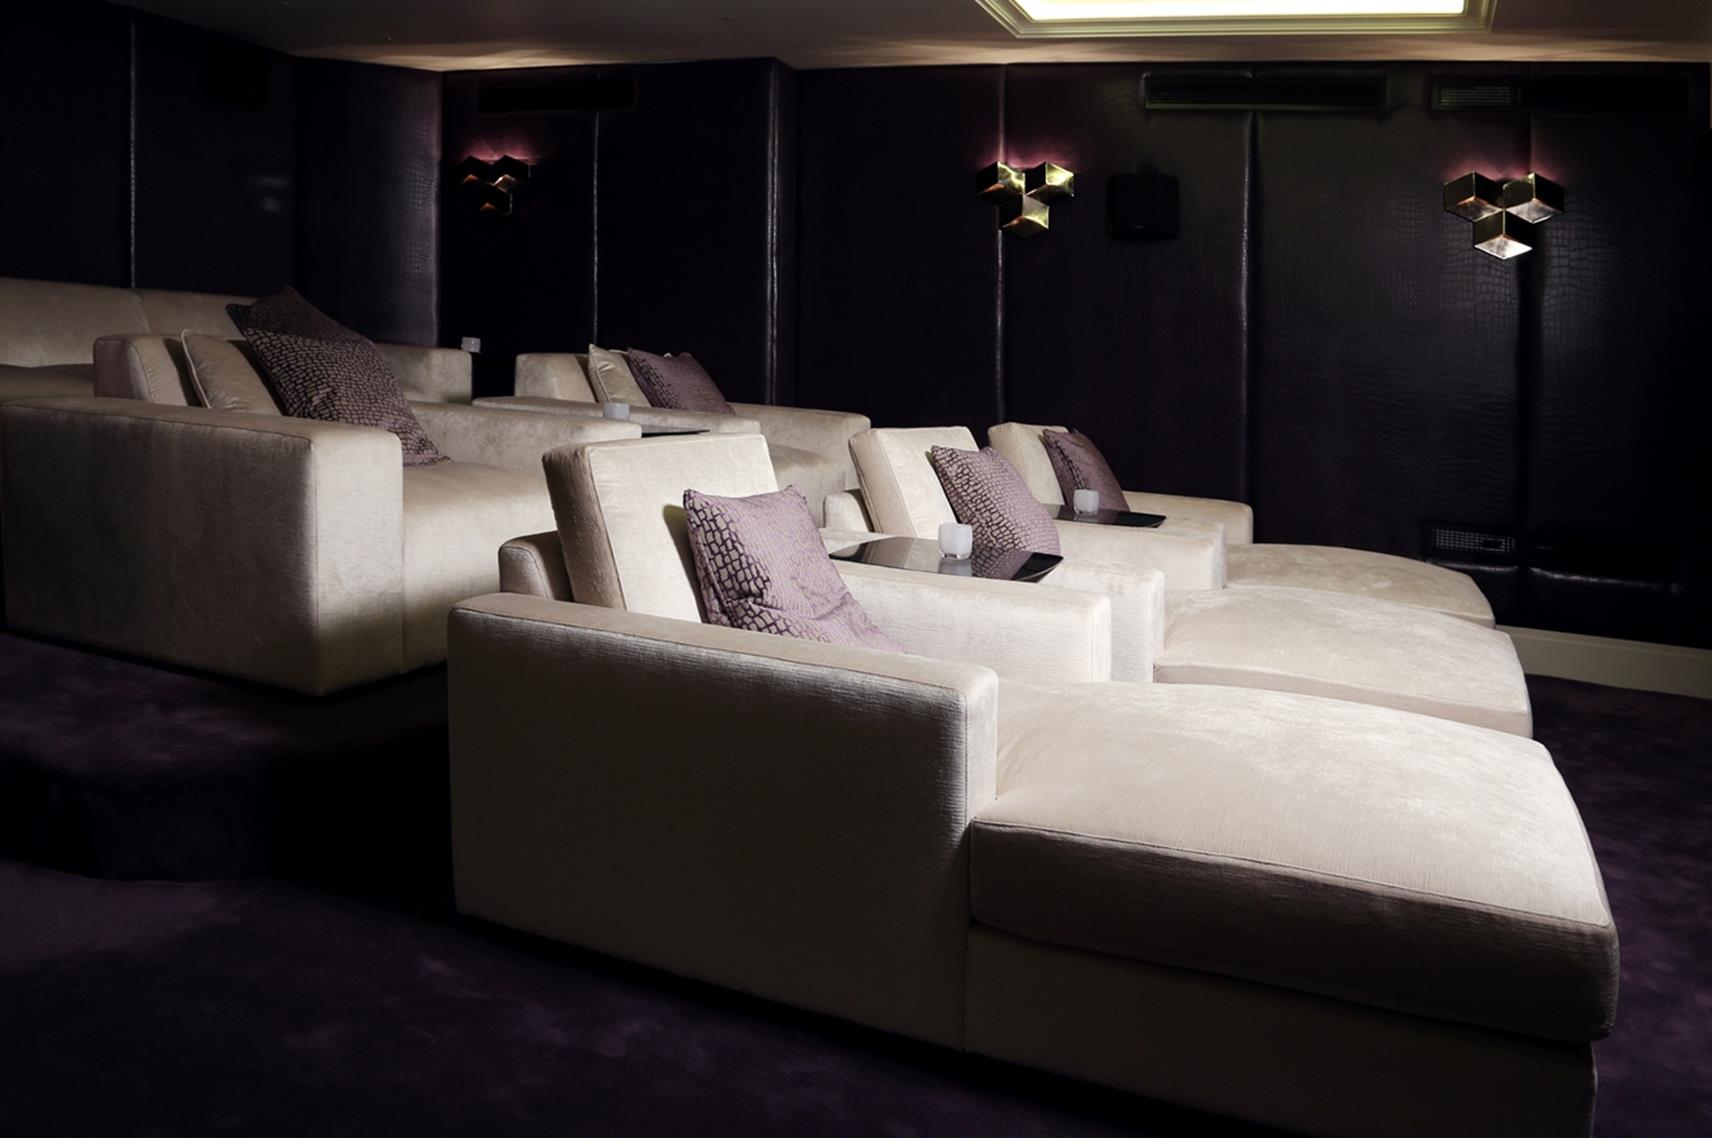 Home Theater Couch Living Room Furniture 3